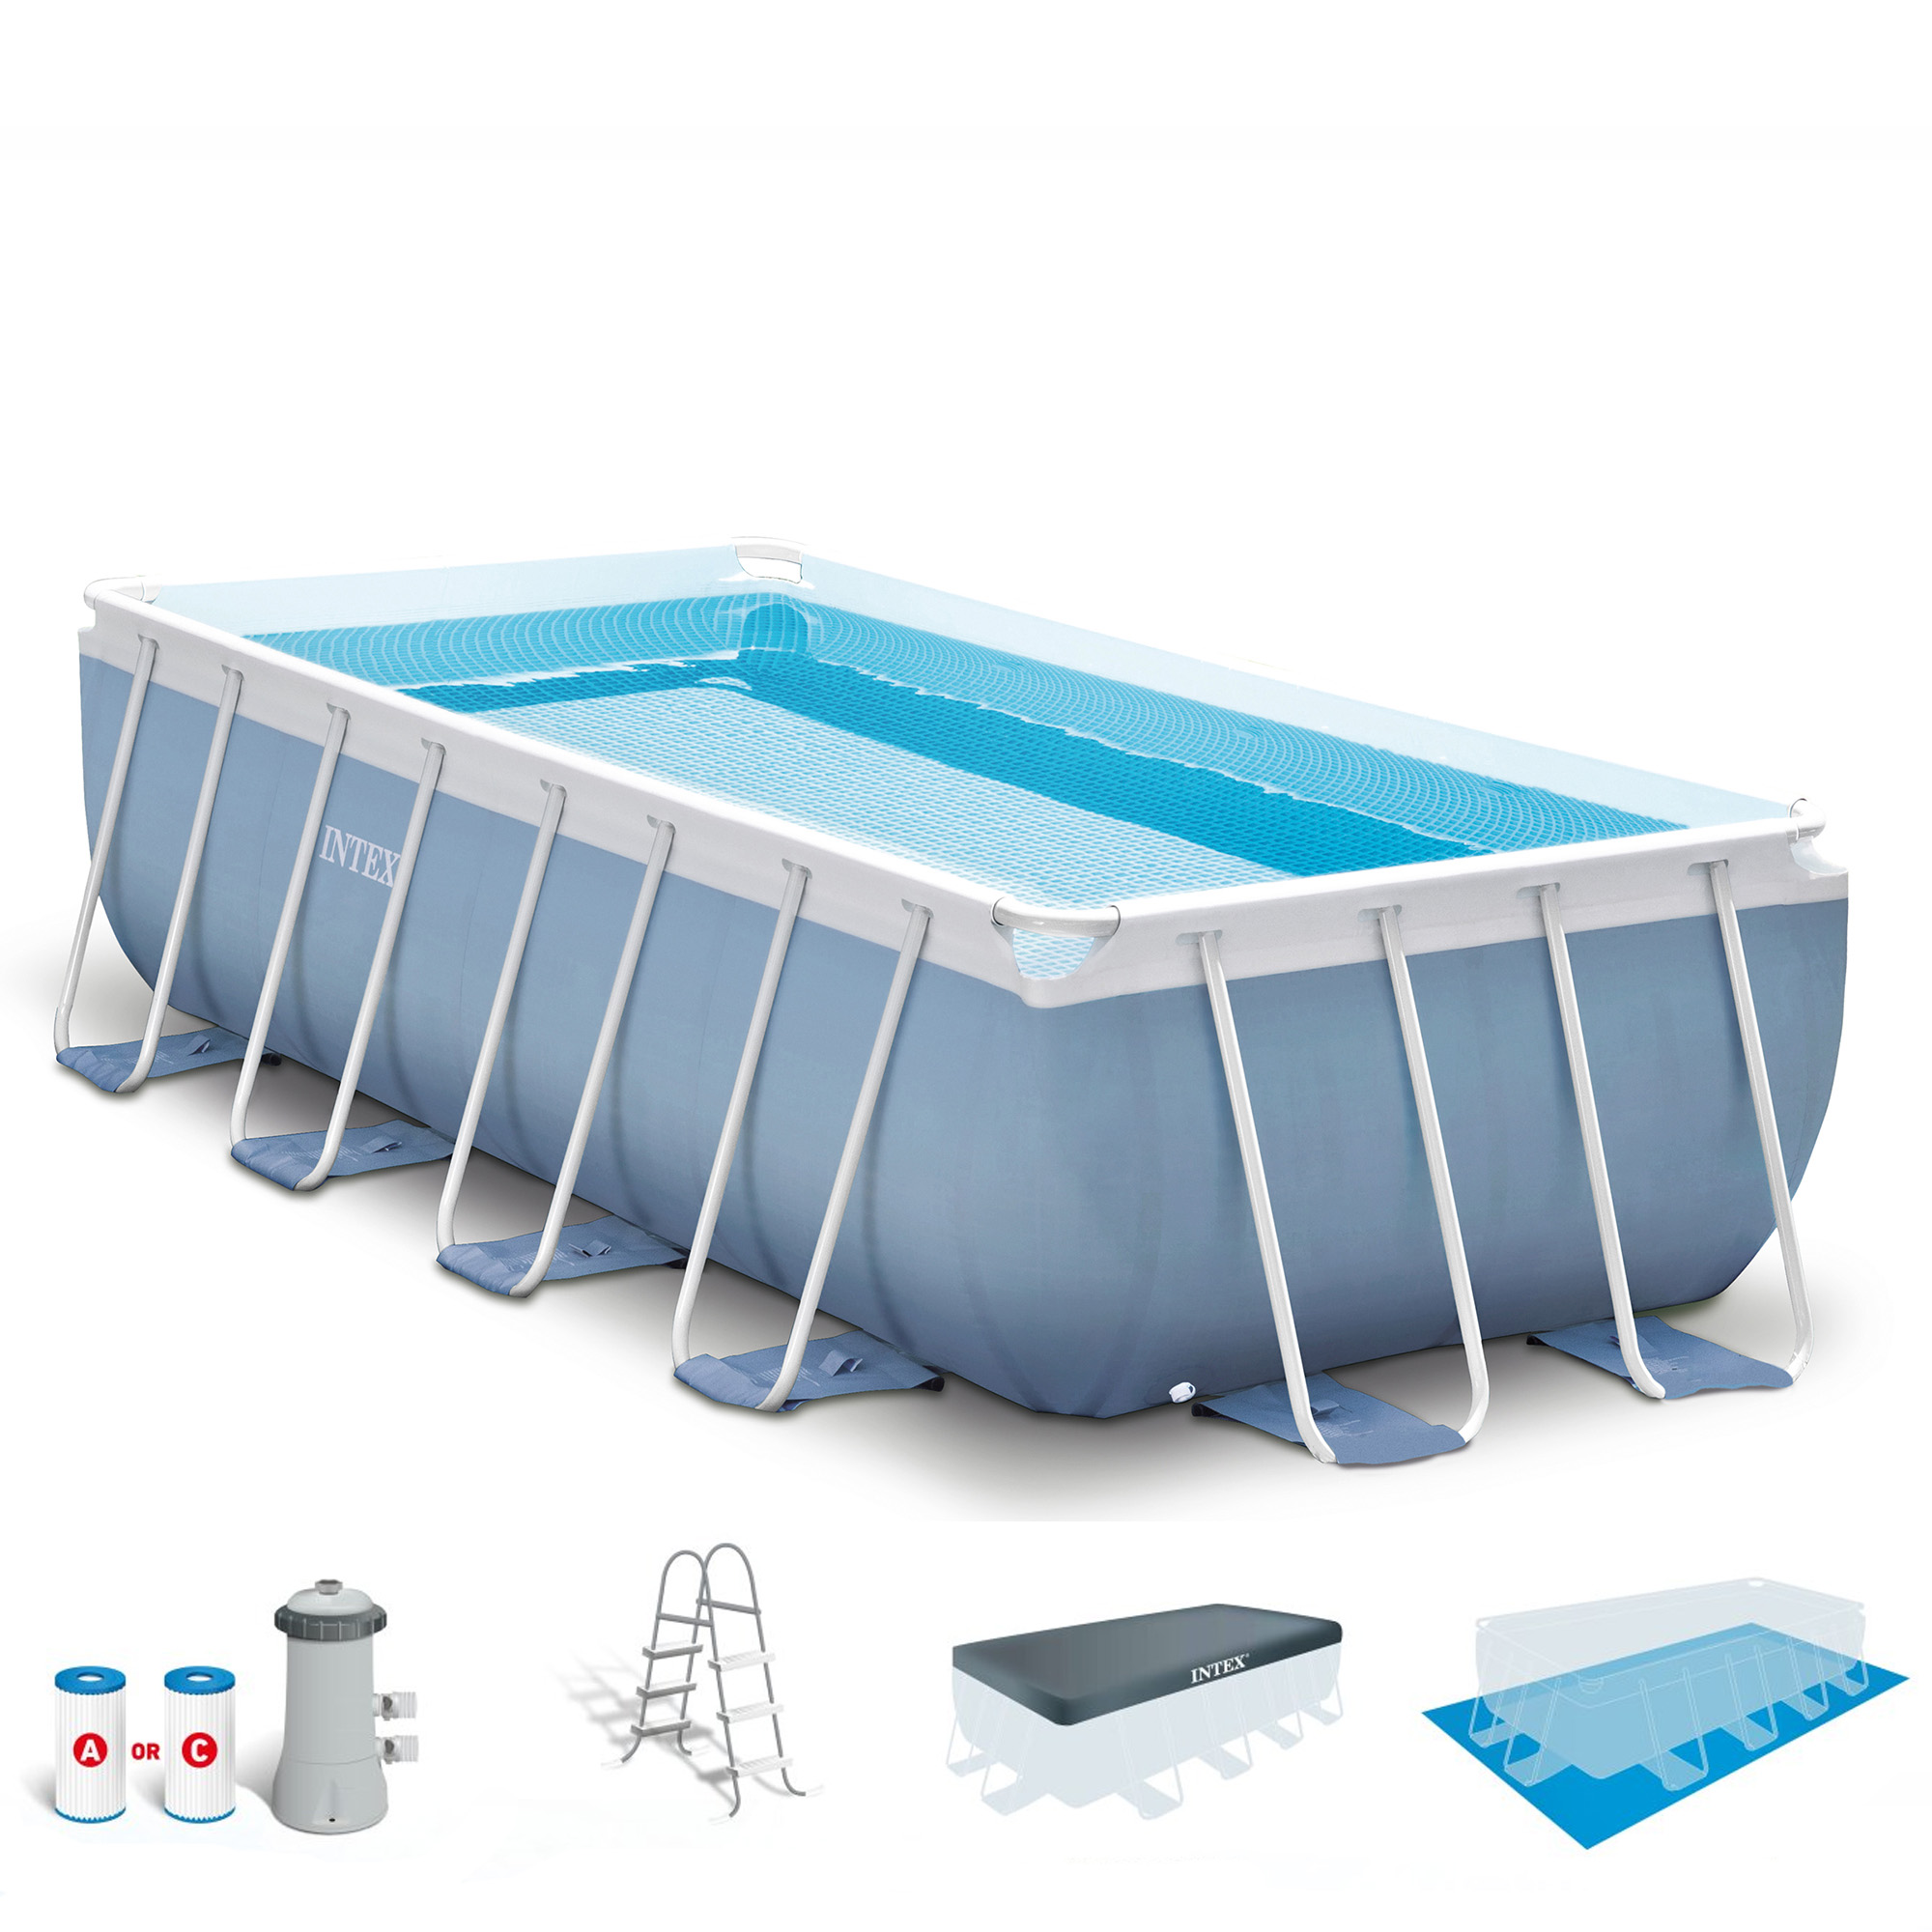 Intex 16 39 x 8 39 x 42 prism frame rectangular above ground swimming pool set ebay for Intex rectangular swimming pool